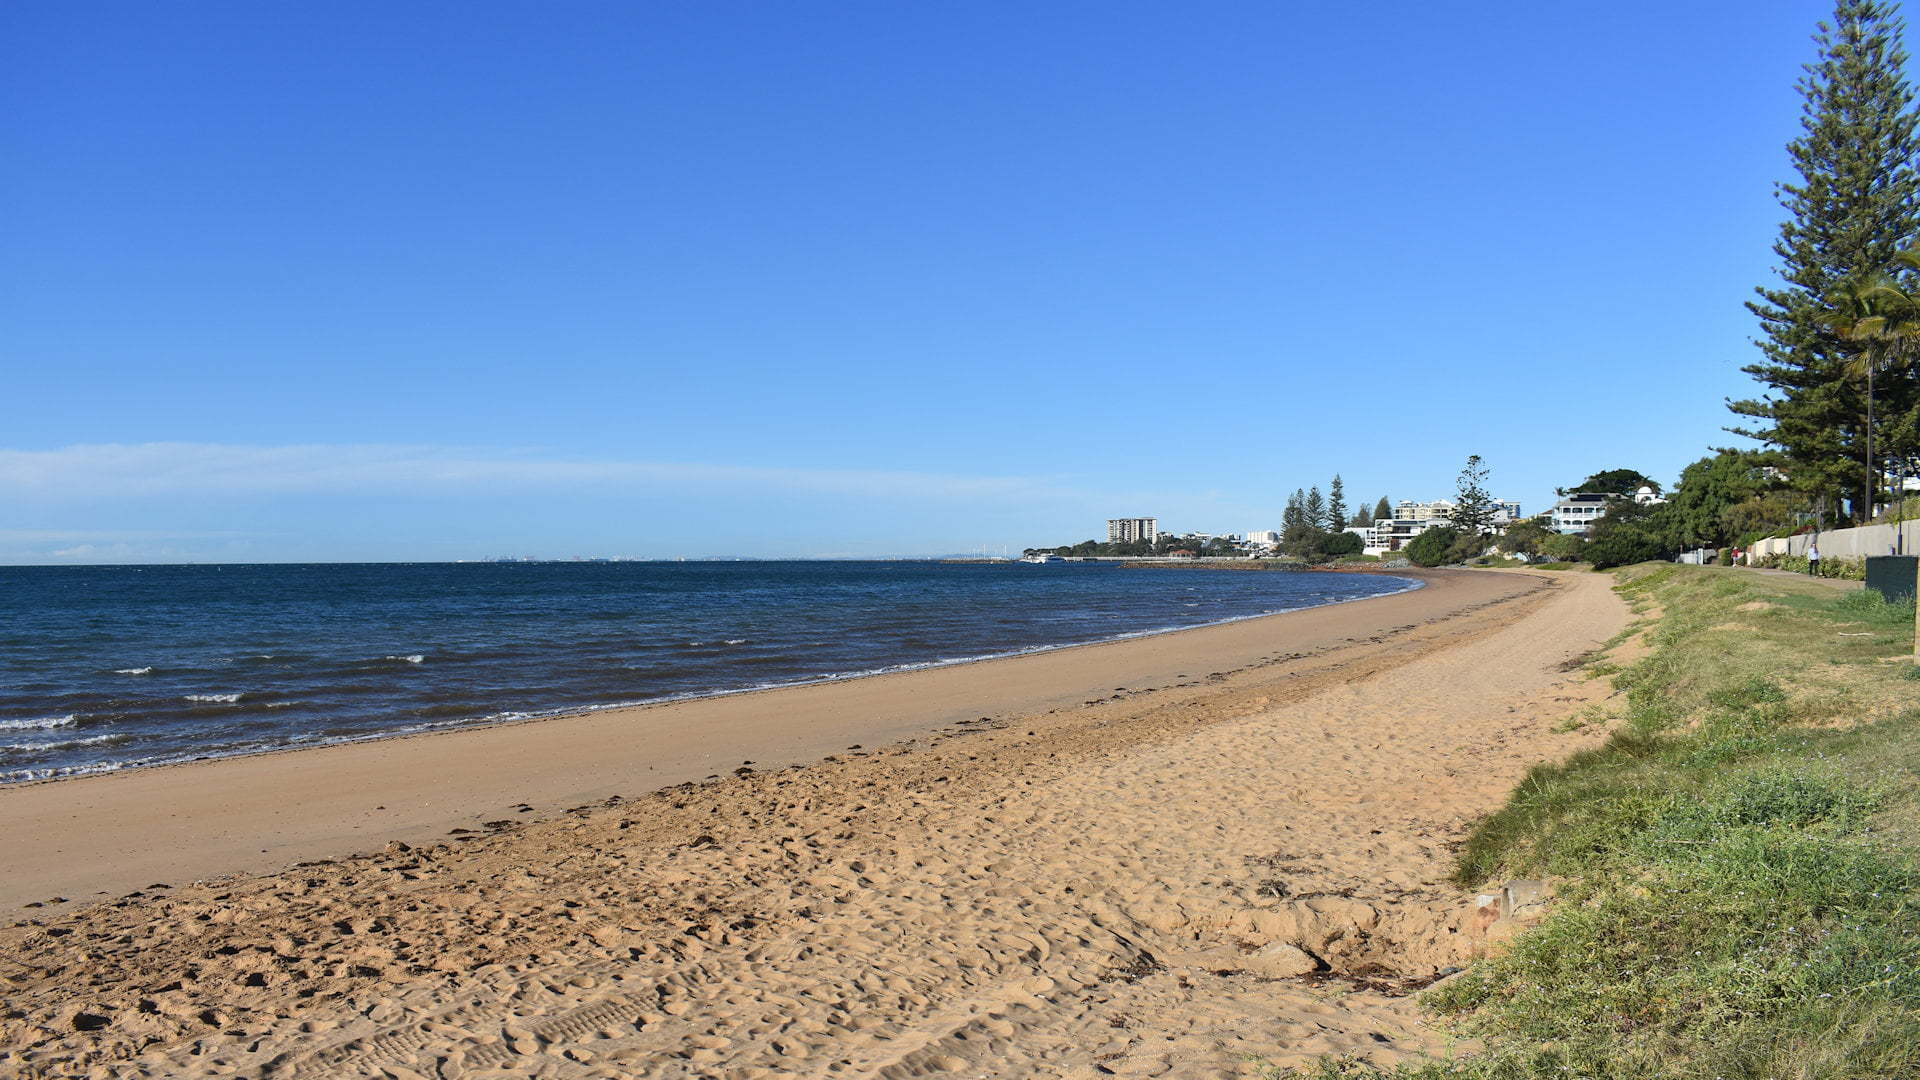 Looking along a beach with the water on the left and grass above the sand on the right, taken at Queens Beach on the Redcliffe Peninsula